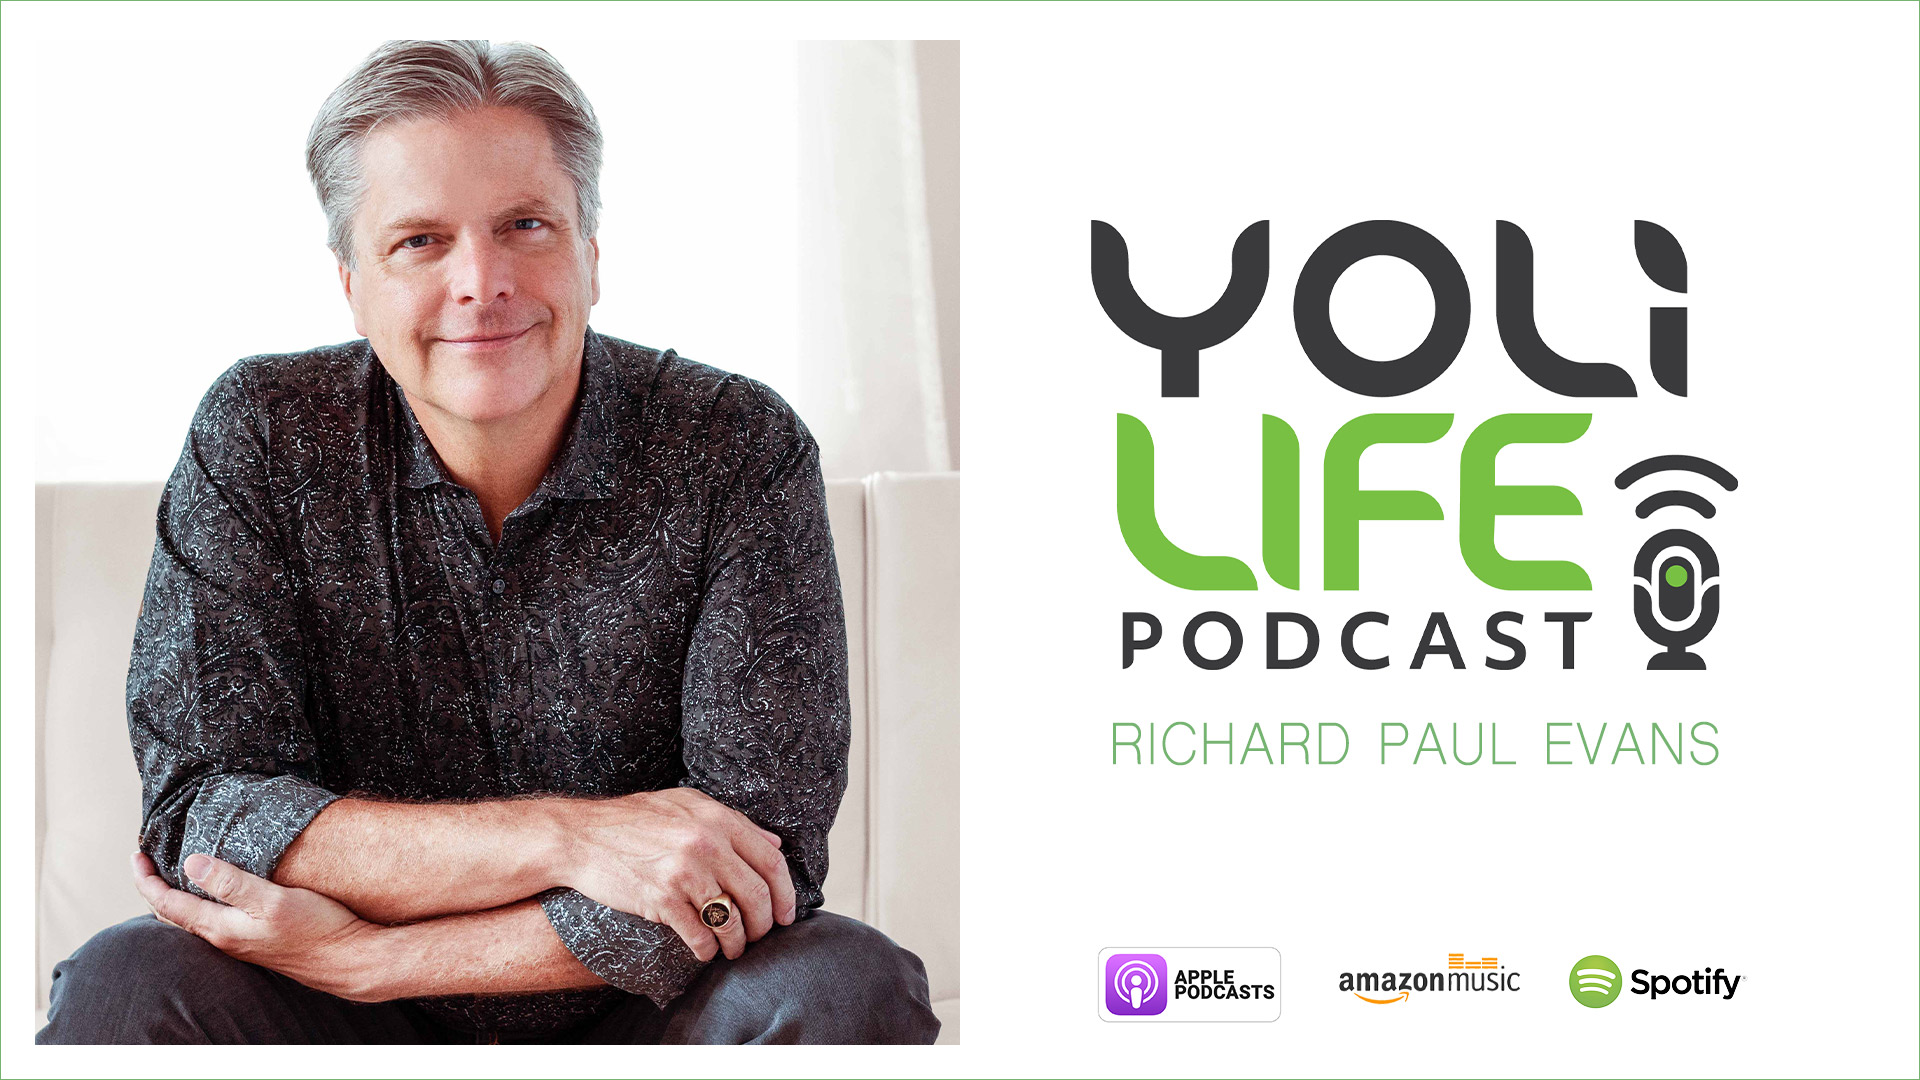 Richard Paul Evans on the Yoli Life Podcast